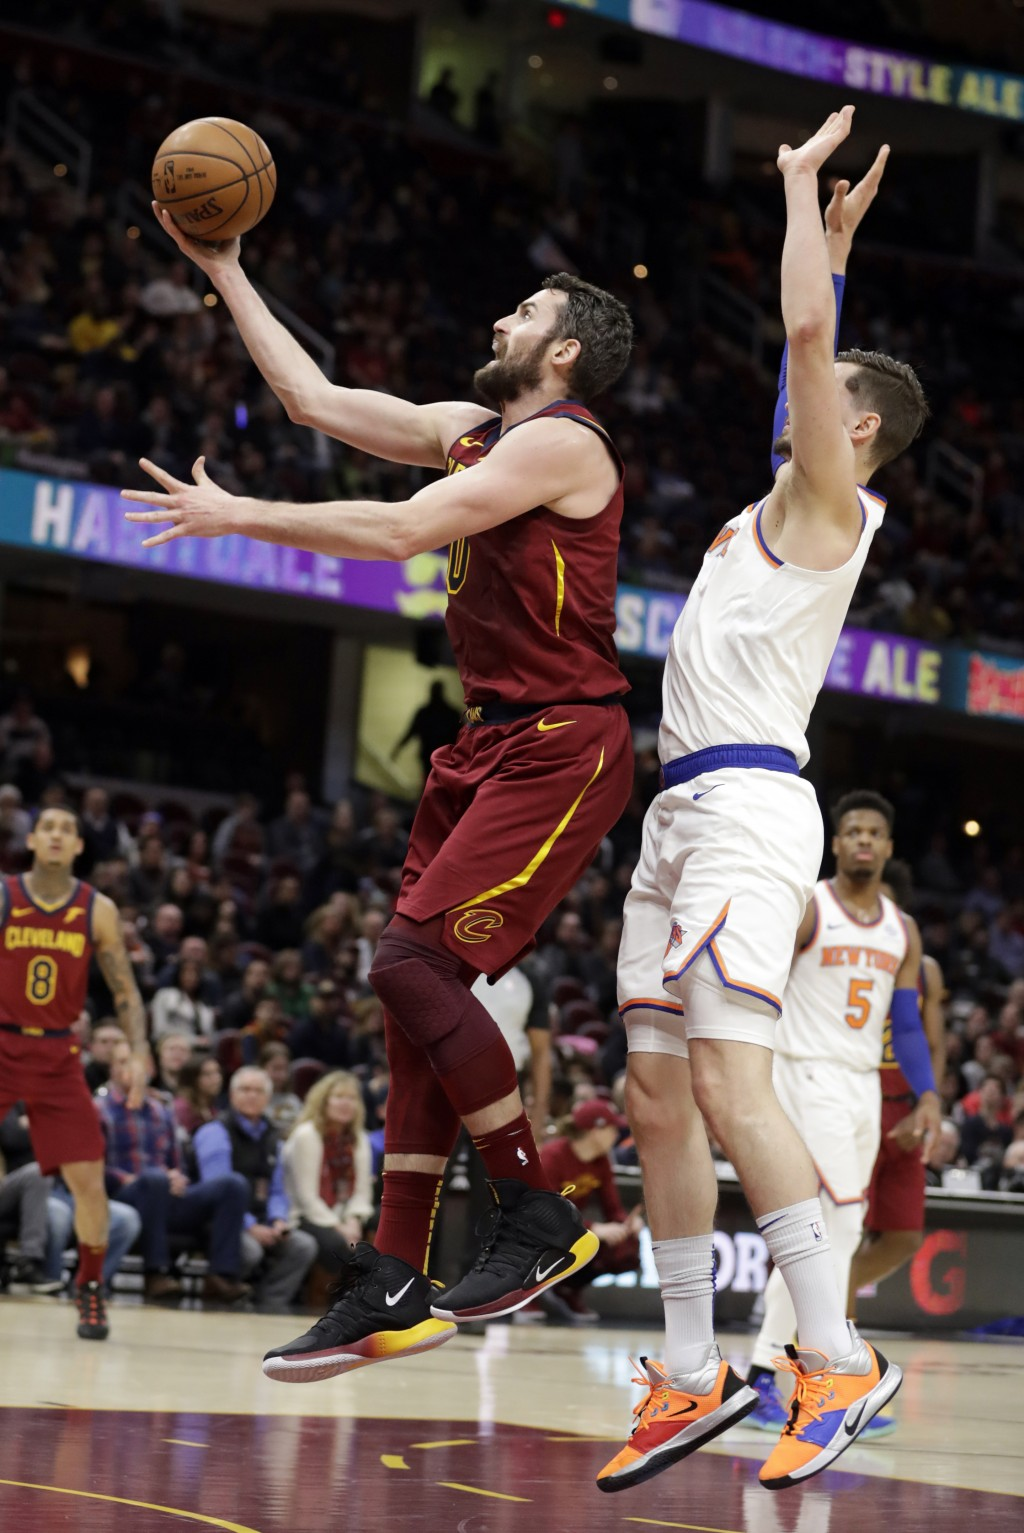 Cleveland Cavaliers' Kevin Love, left, drives to the basket against New York Knicks' Mario Hezonja, from Croatia, in the first half of an NBA basketba...